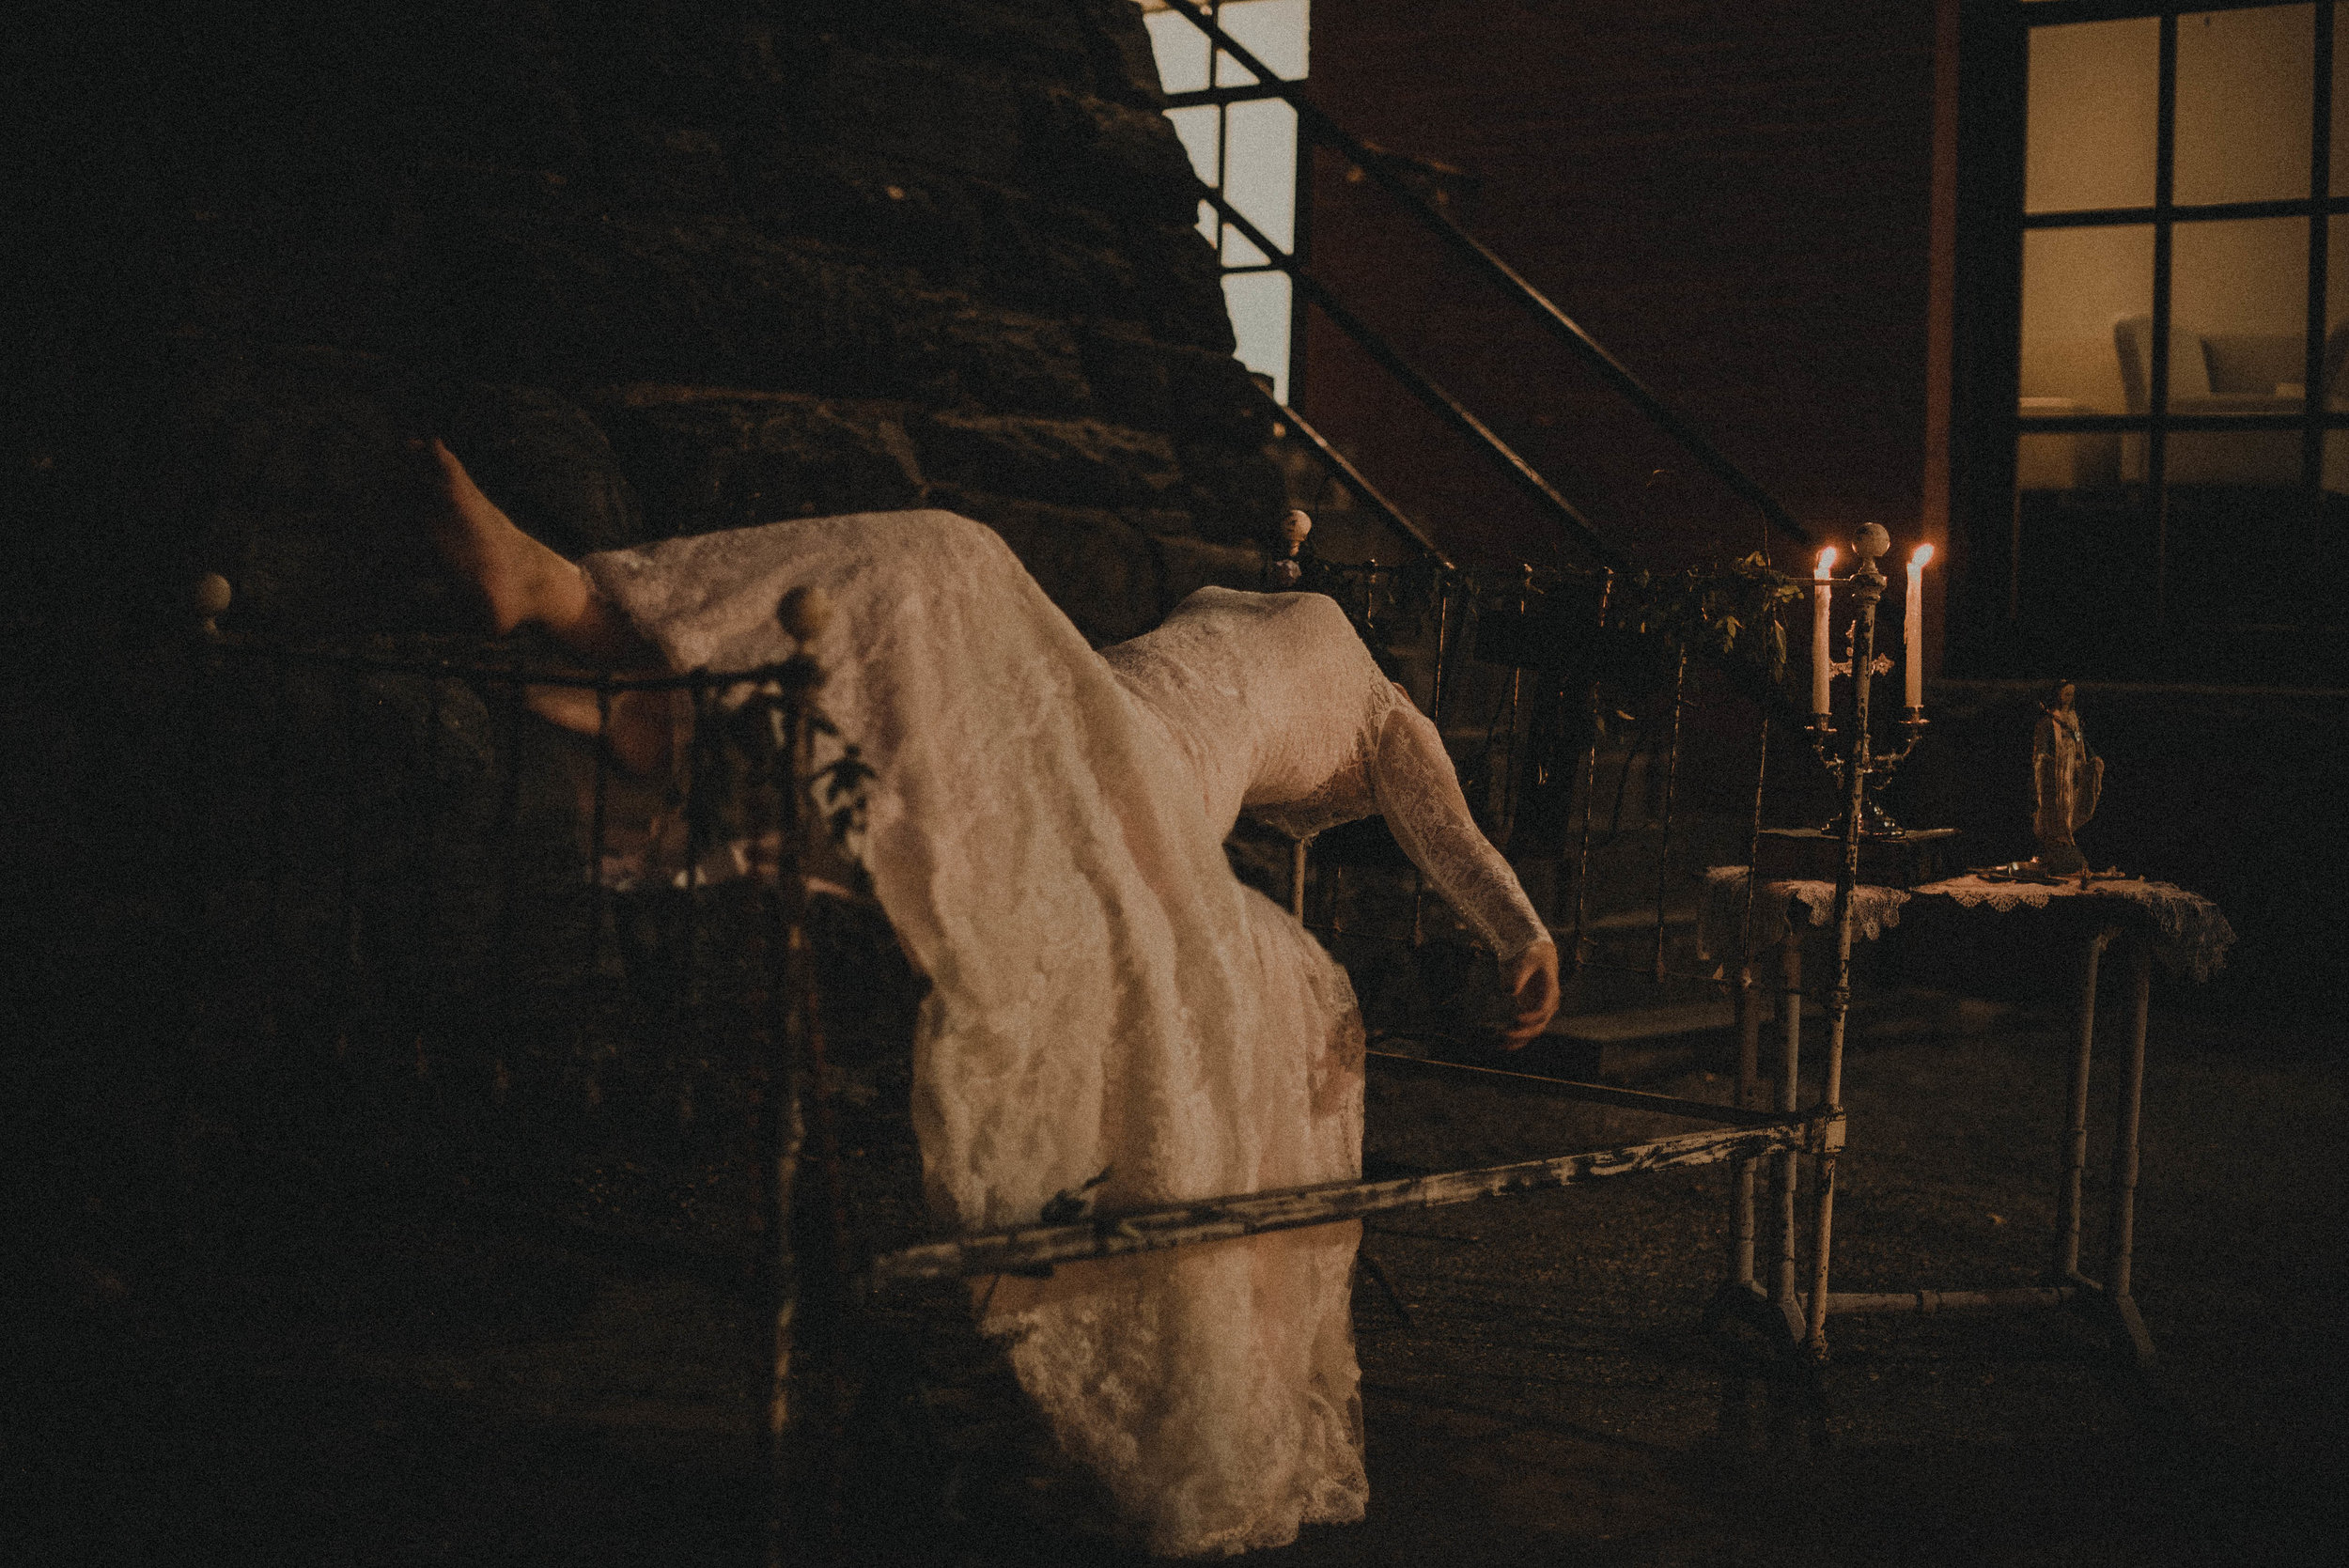 Bride levitating on bed